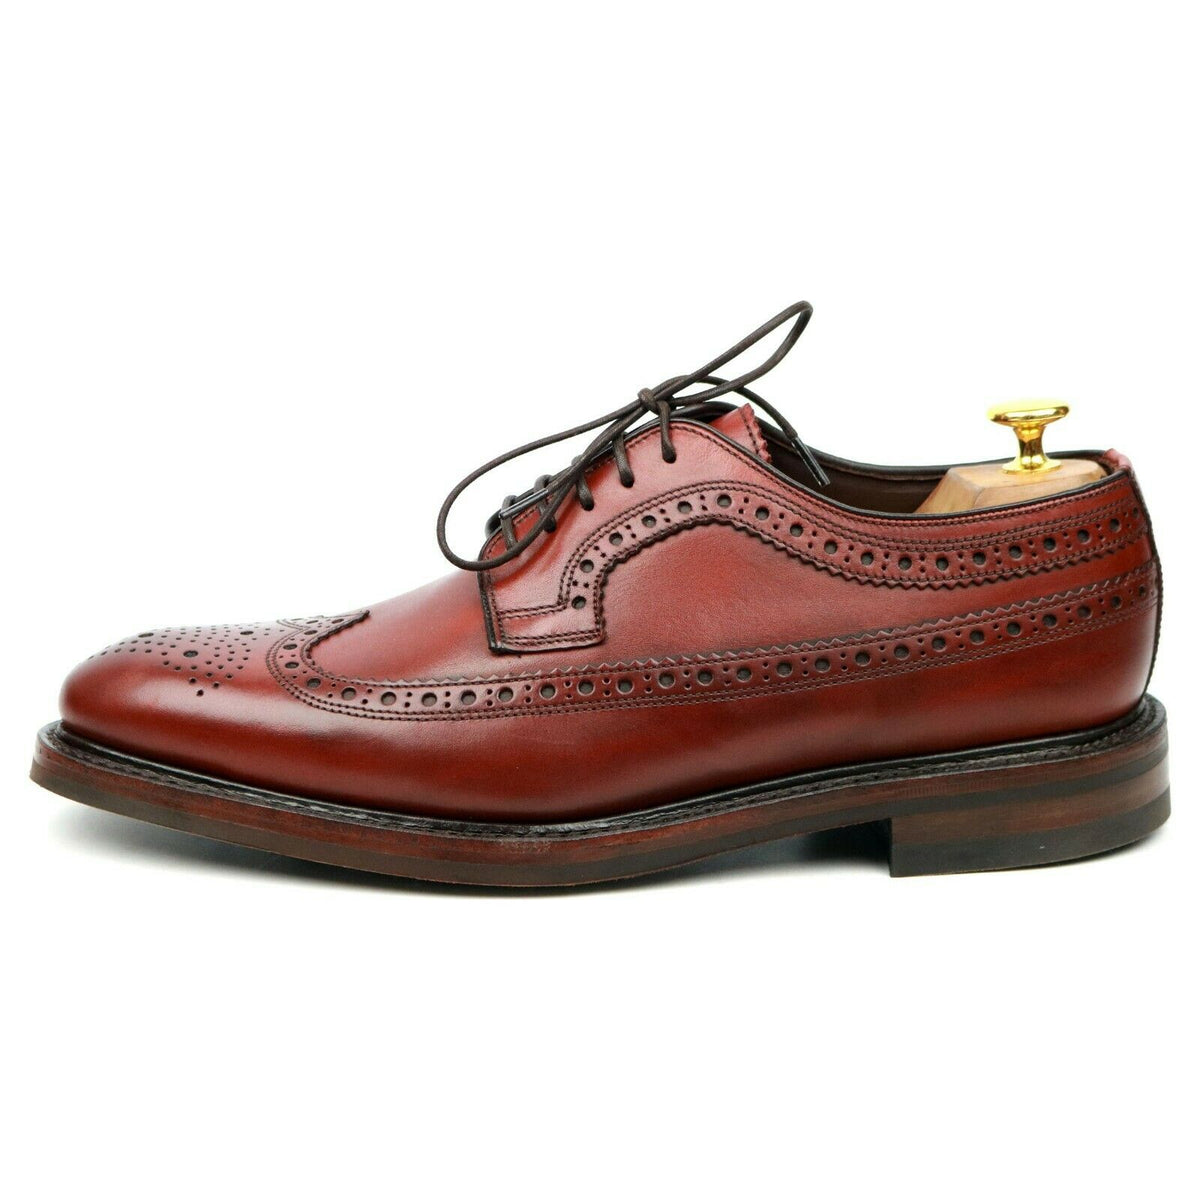 Loake 1880 Legacy 'Birkdale' Brown Leather Derby Brogues UK 8 - 11